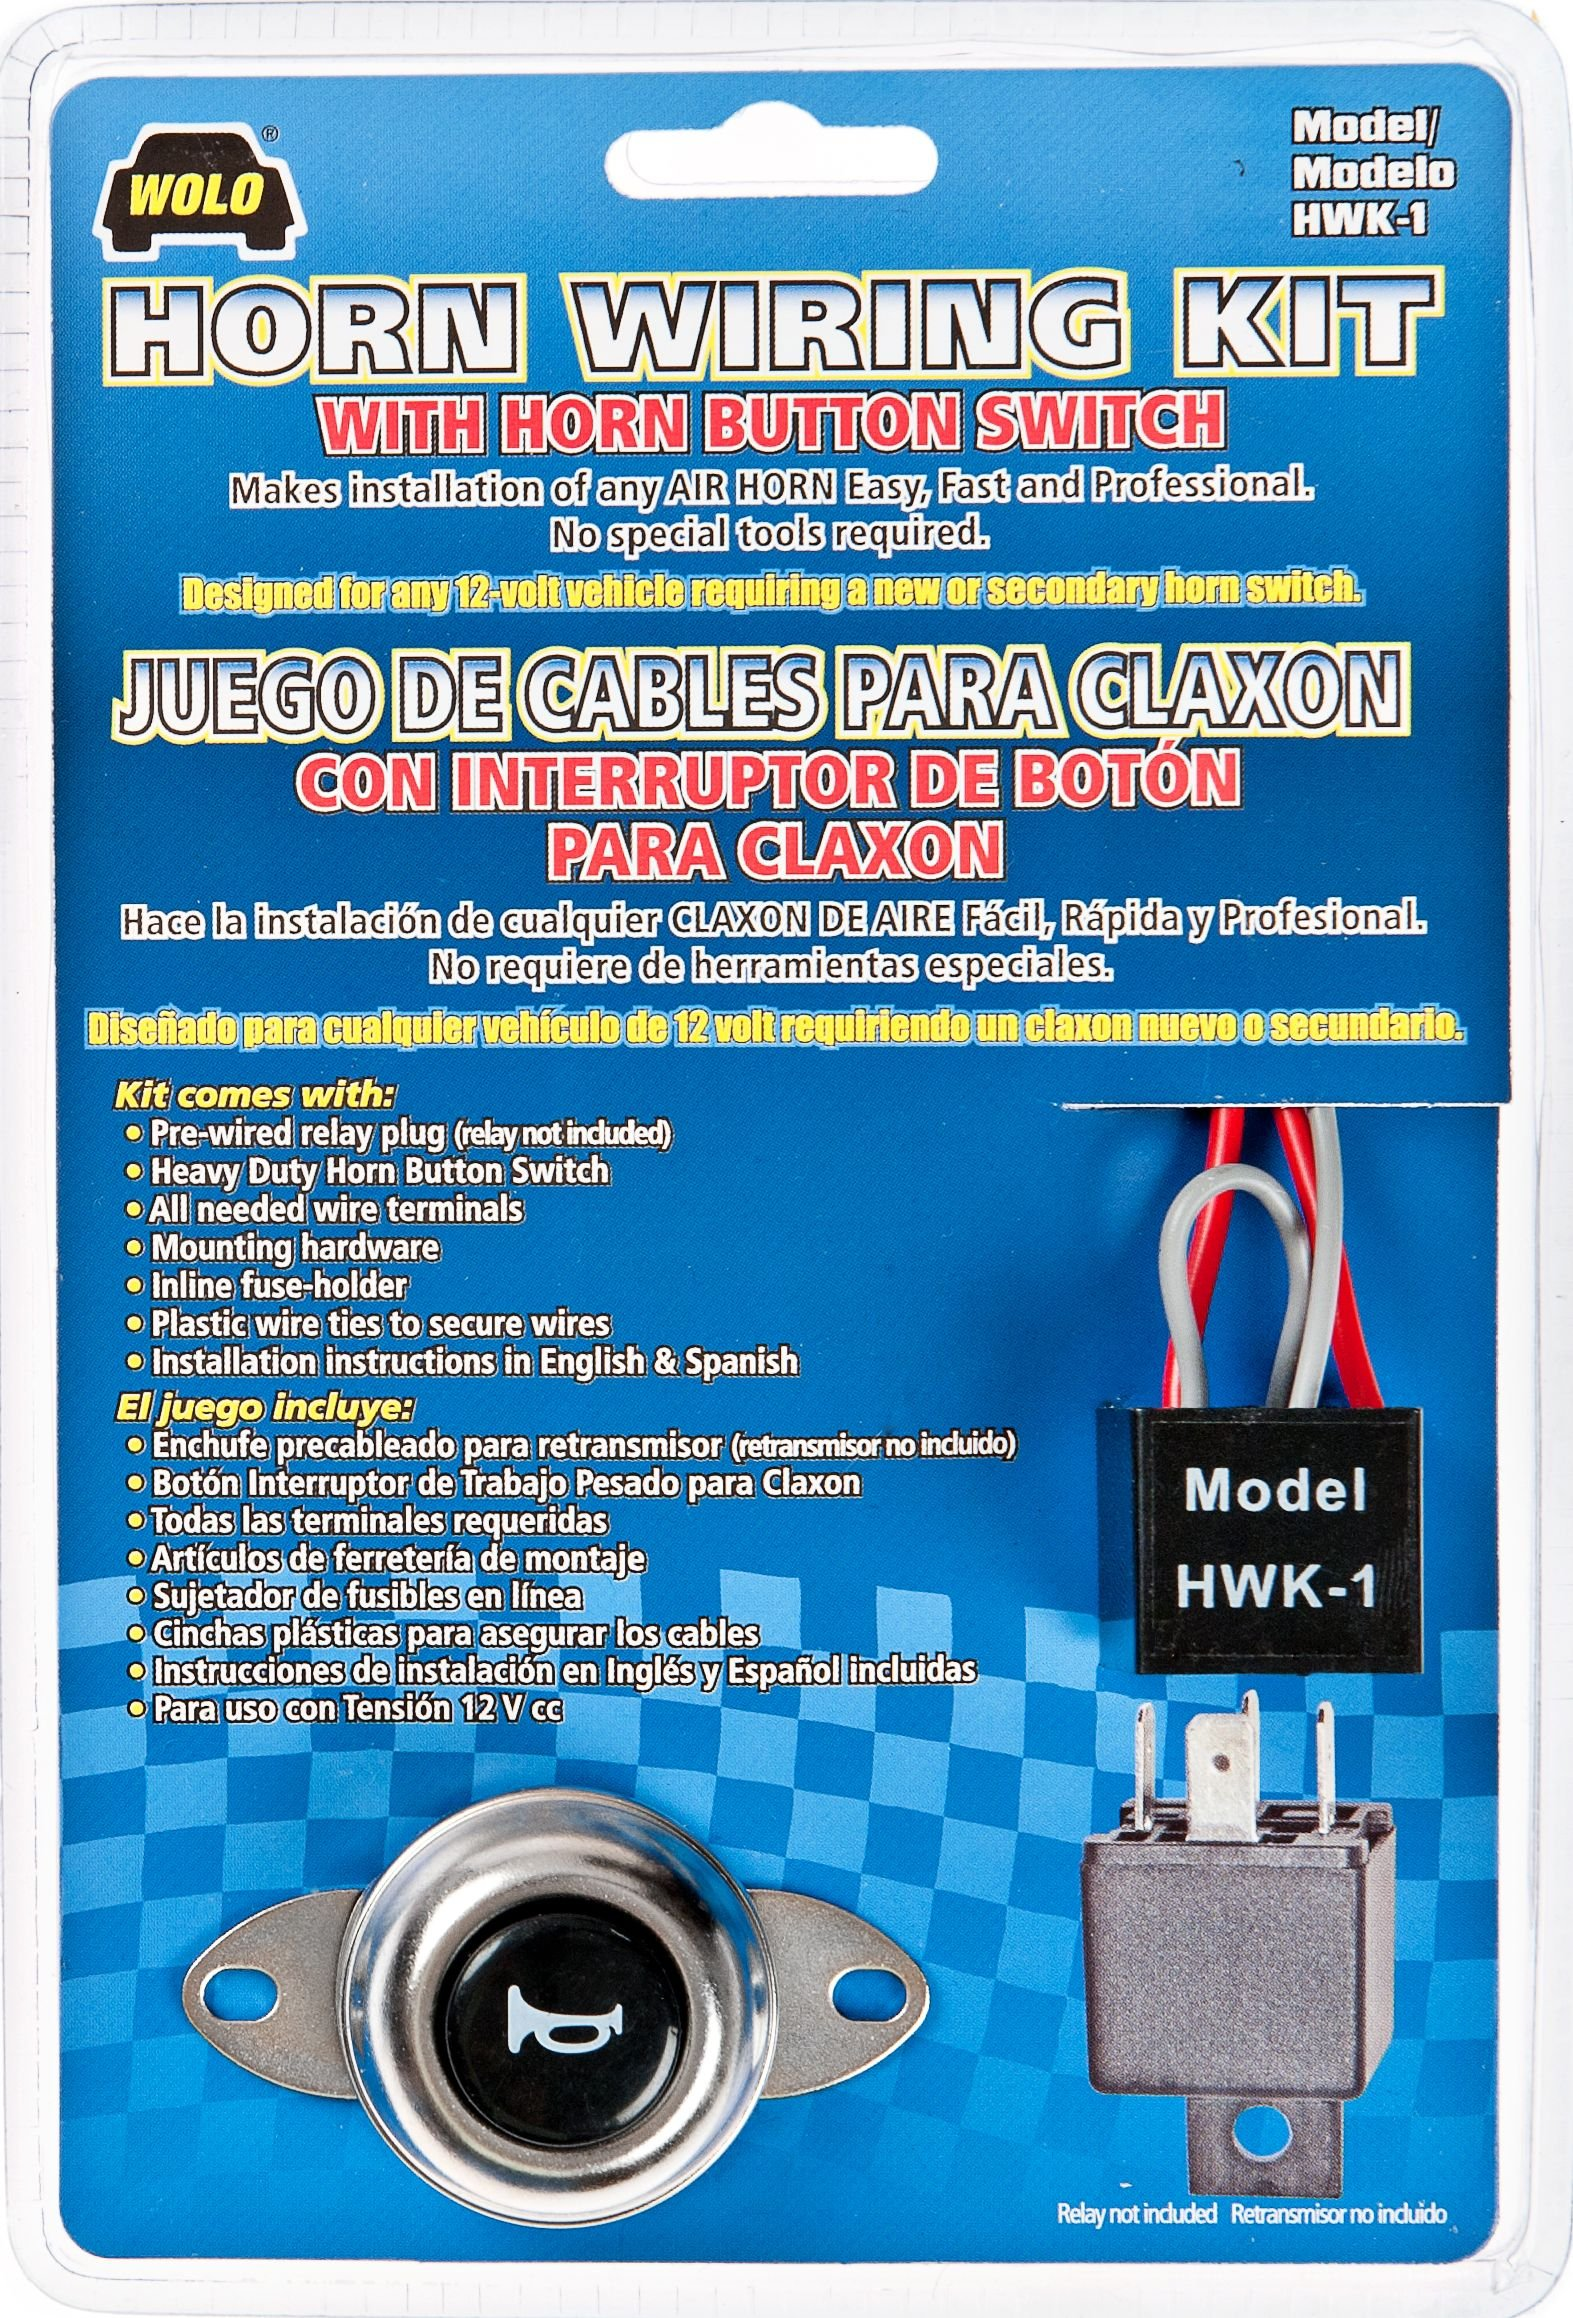 Wolo (HWK-1) Air Horn Wiring Kit with Horn Button Switch by Wolo (Image #1)